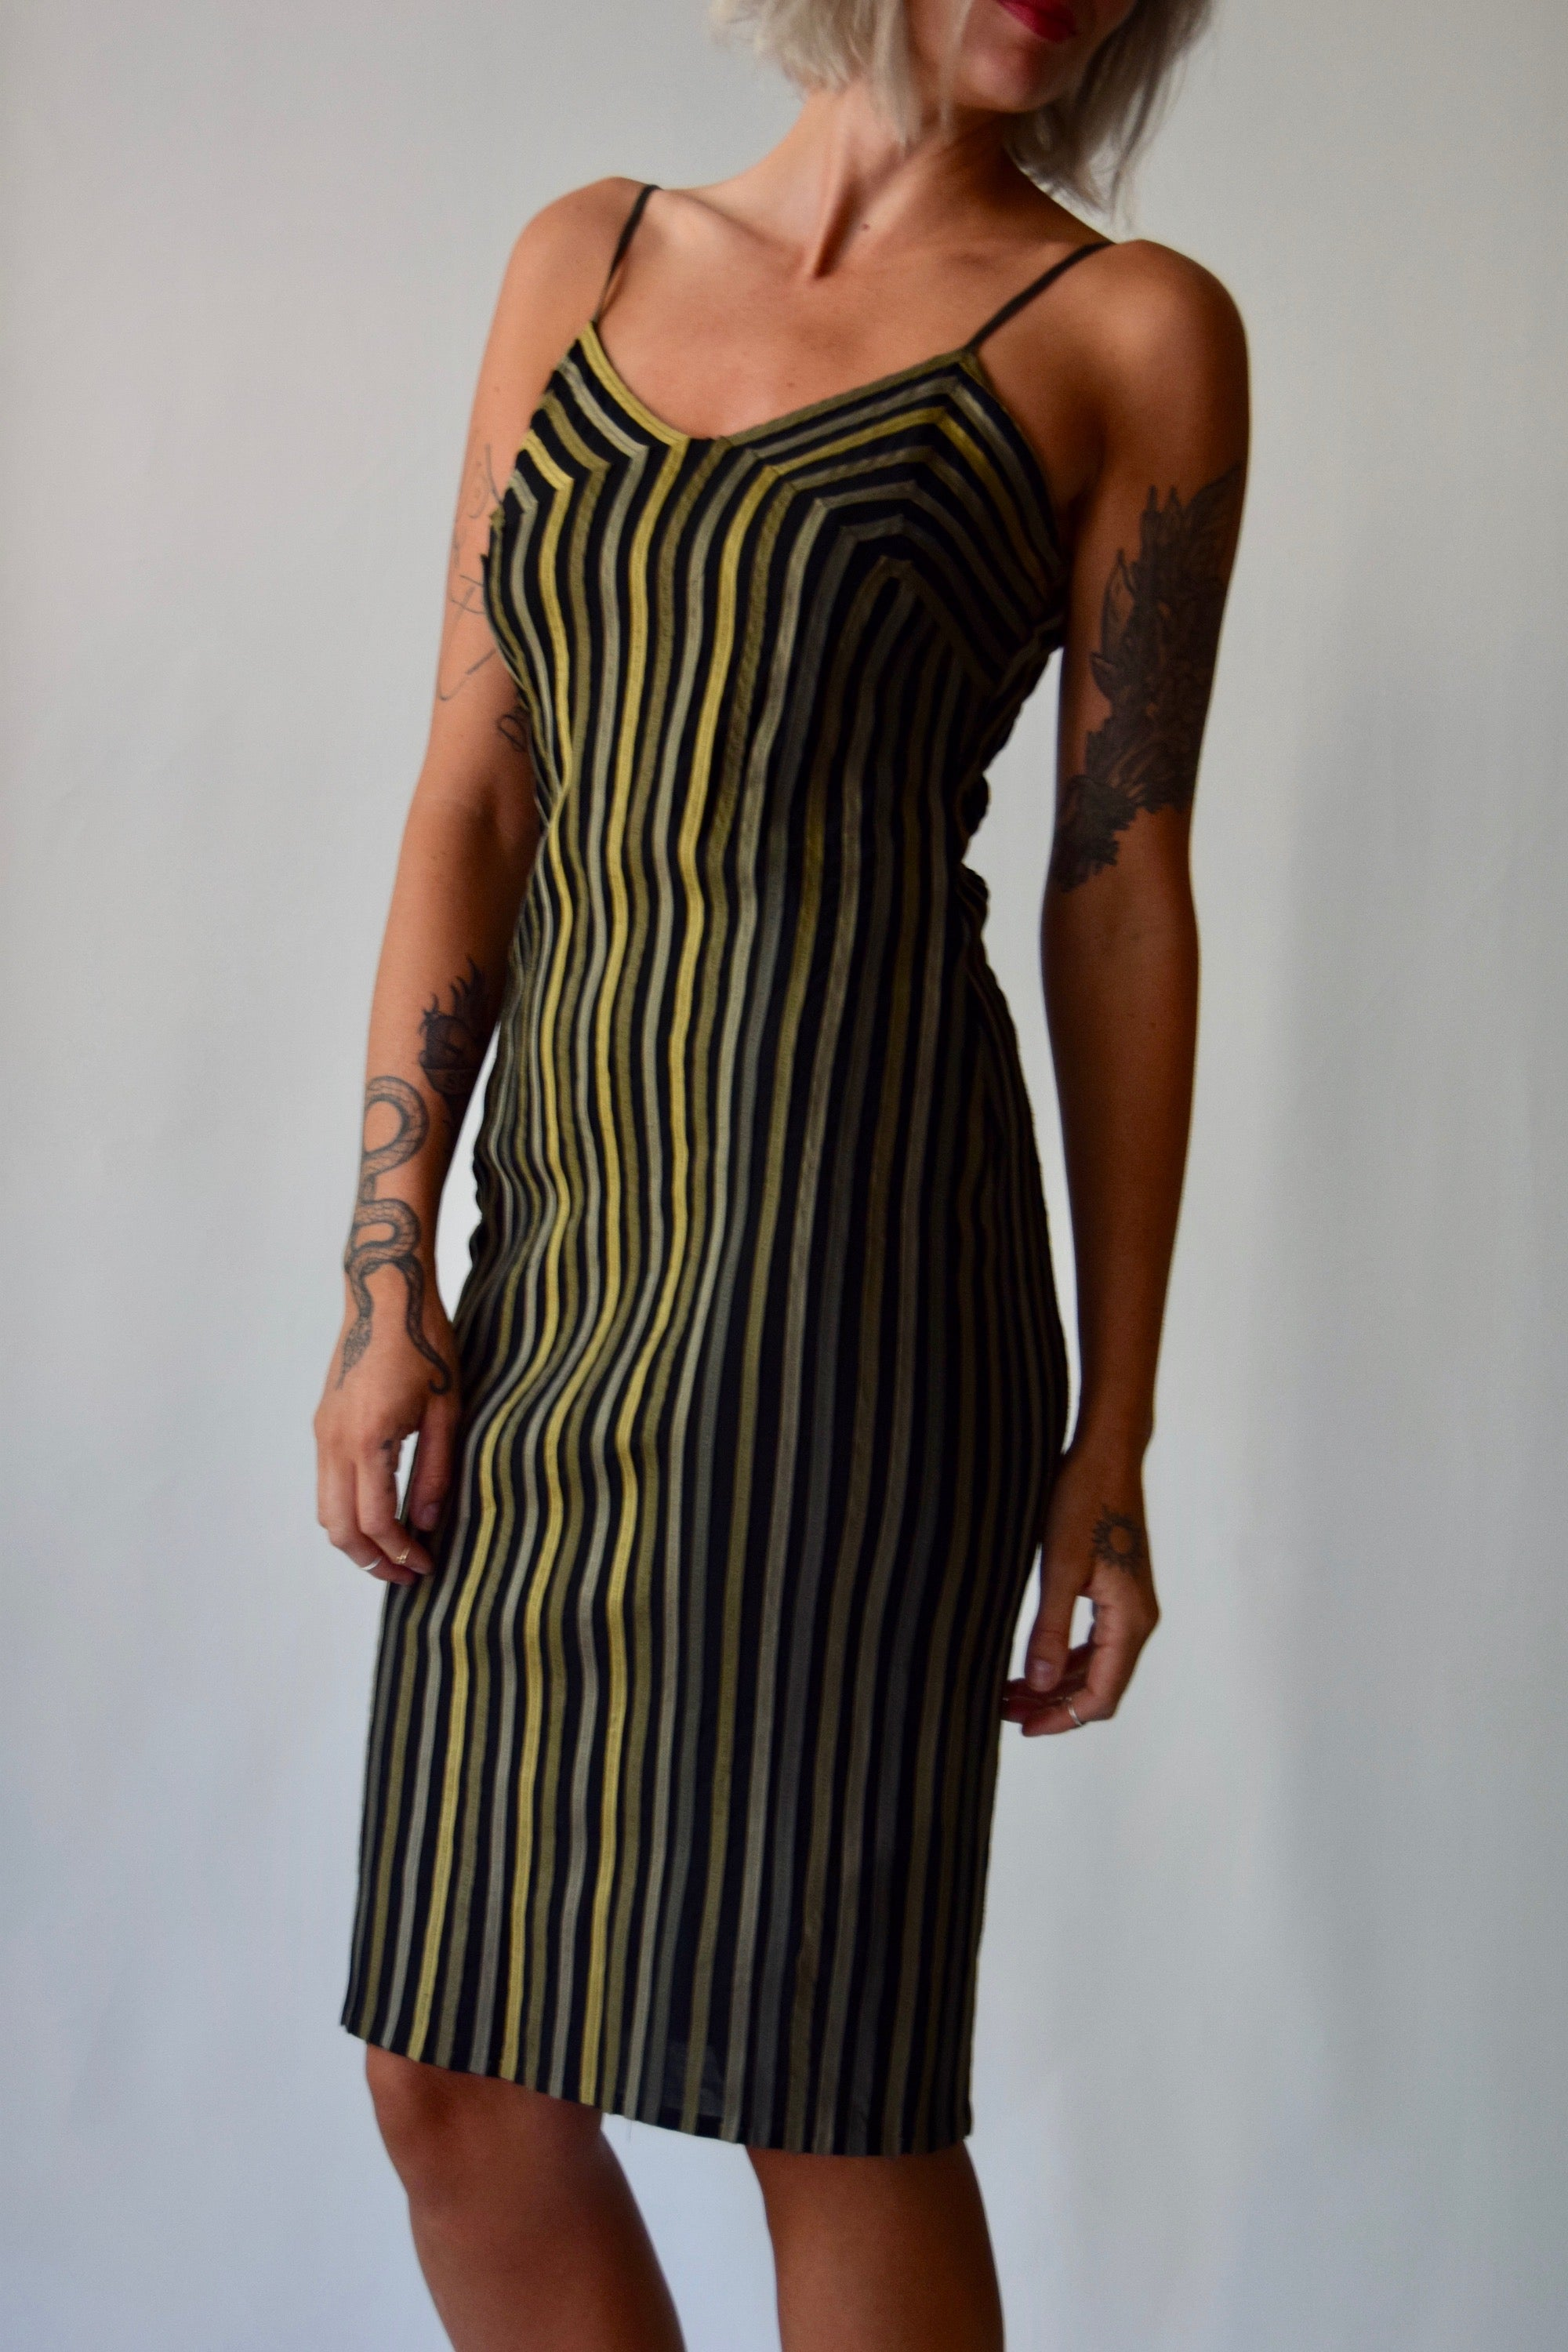 Olive Ribbon Slip Dress FREE SHIPPING TO THE U.S.